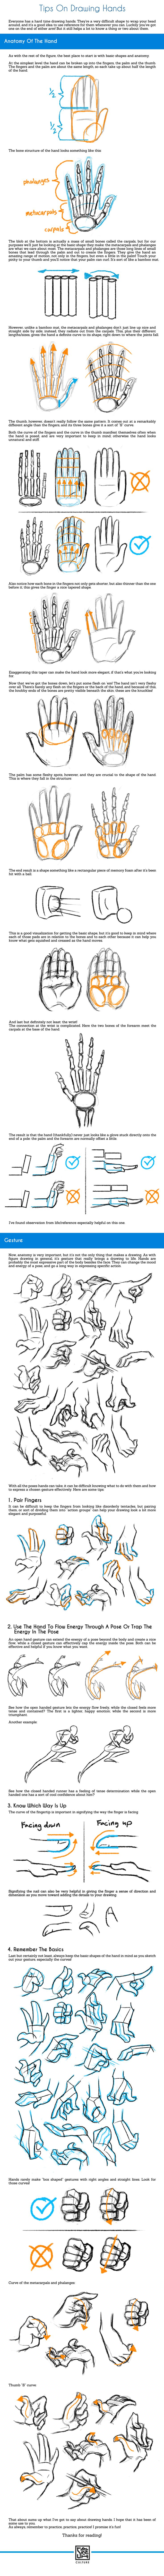 Tips on Drawing Hands Tutorial by SarahCulture on DeviantArt